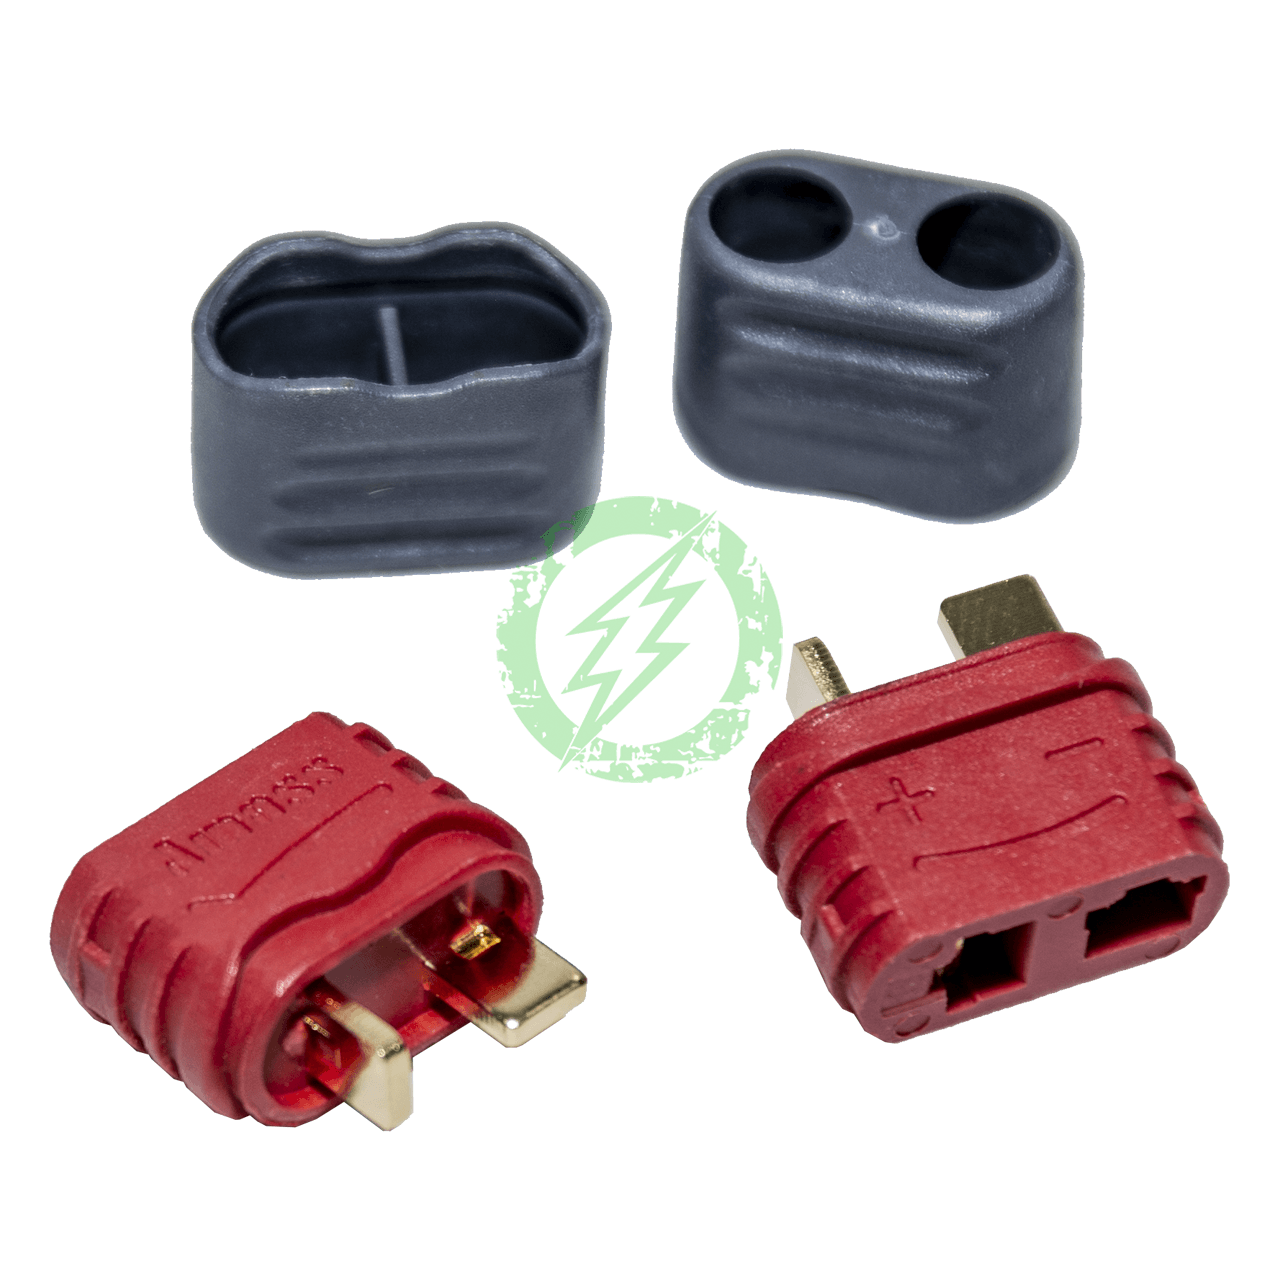 Amped Custom - Set of 2 Female Deans Connectors